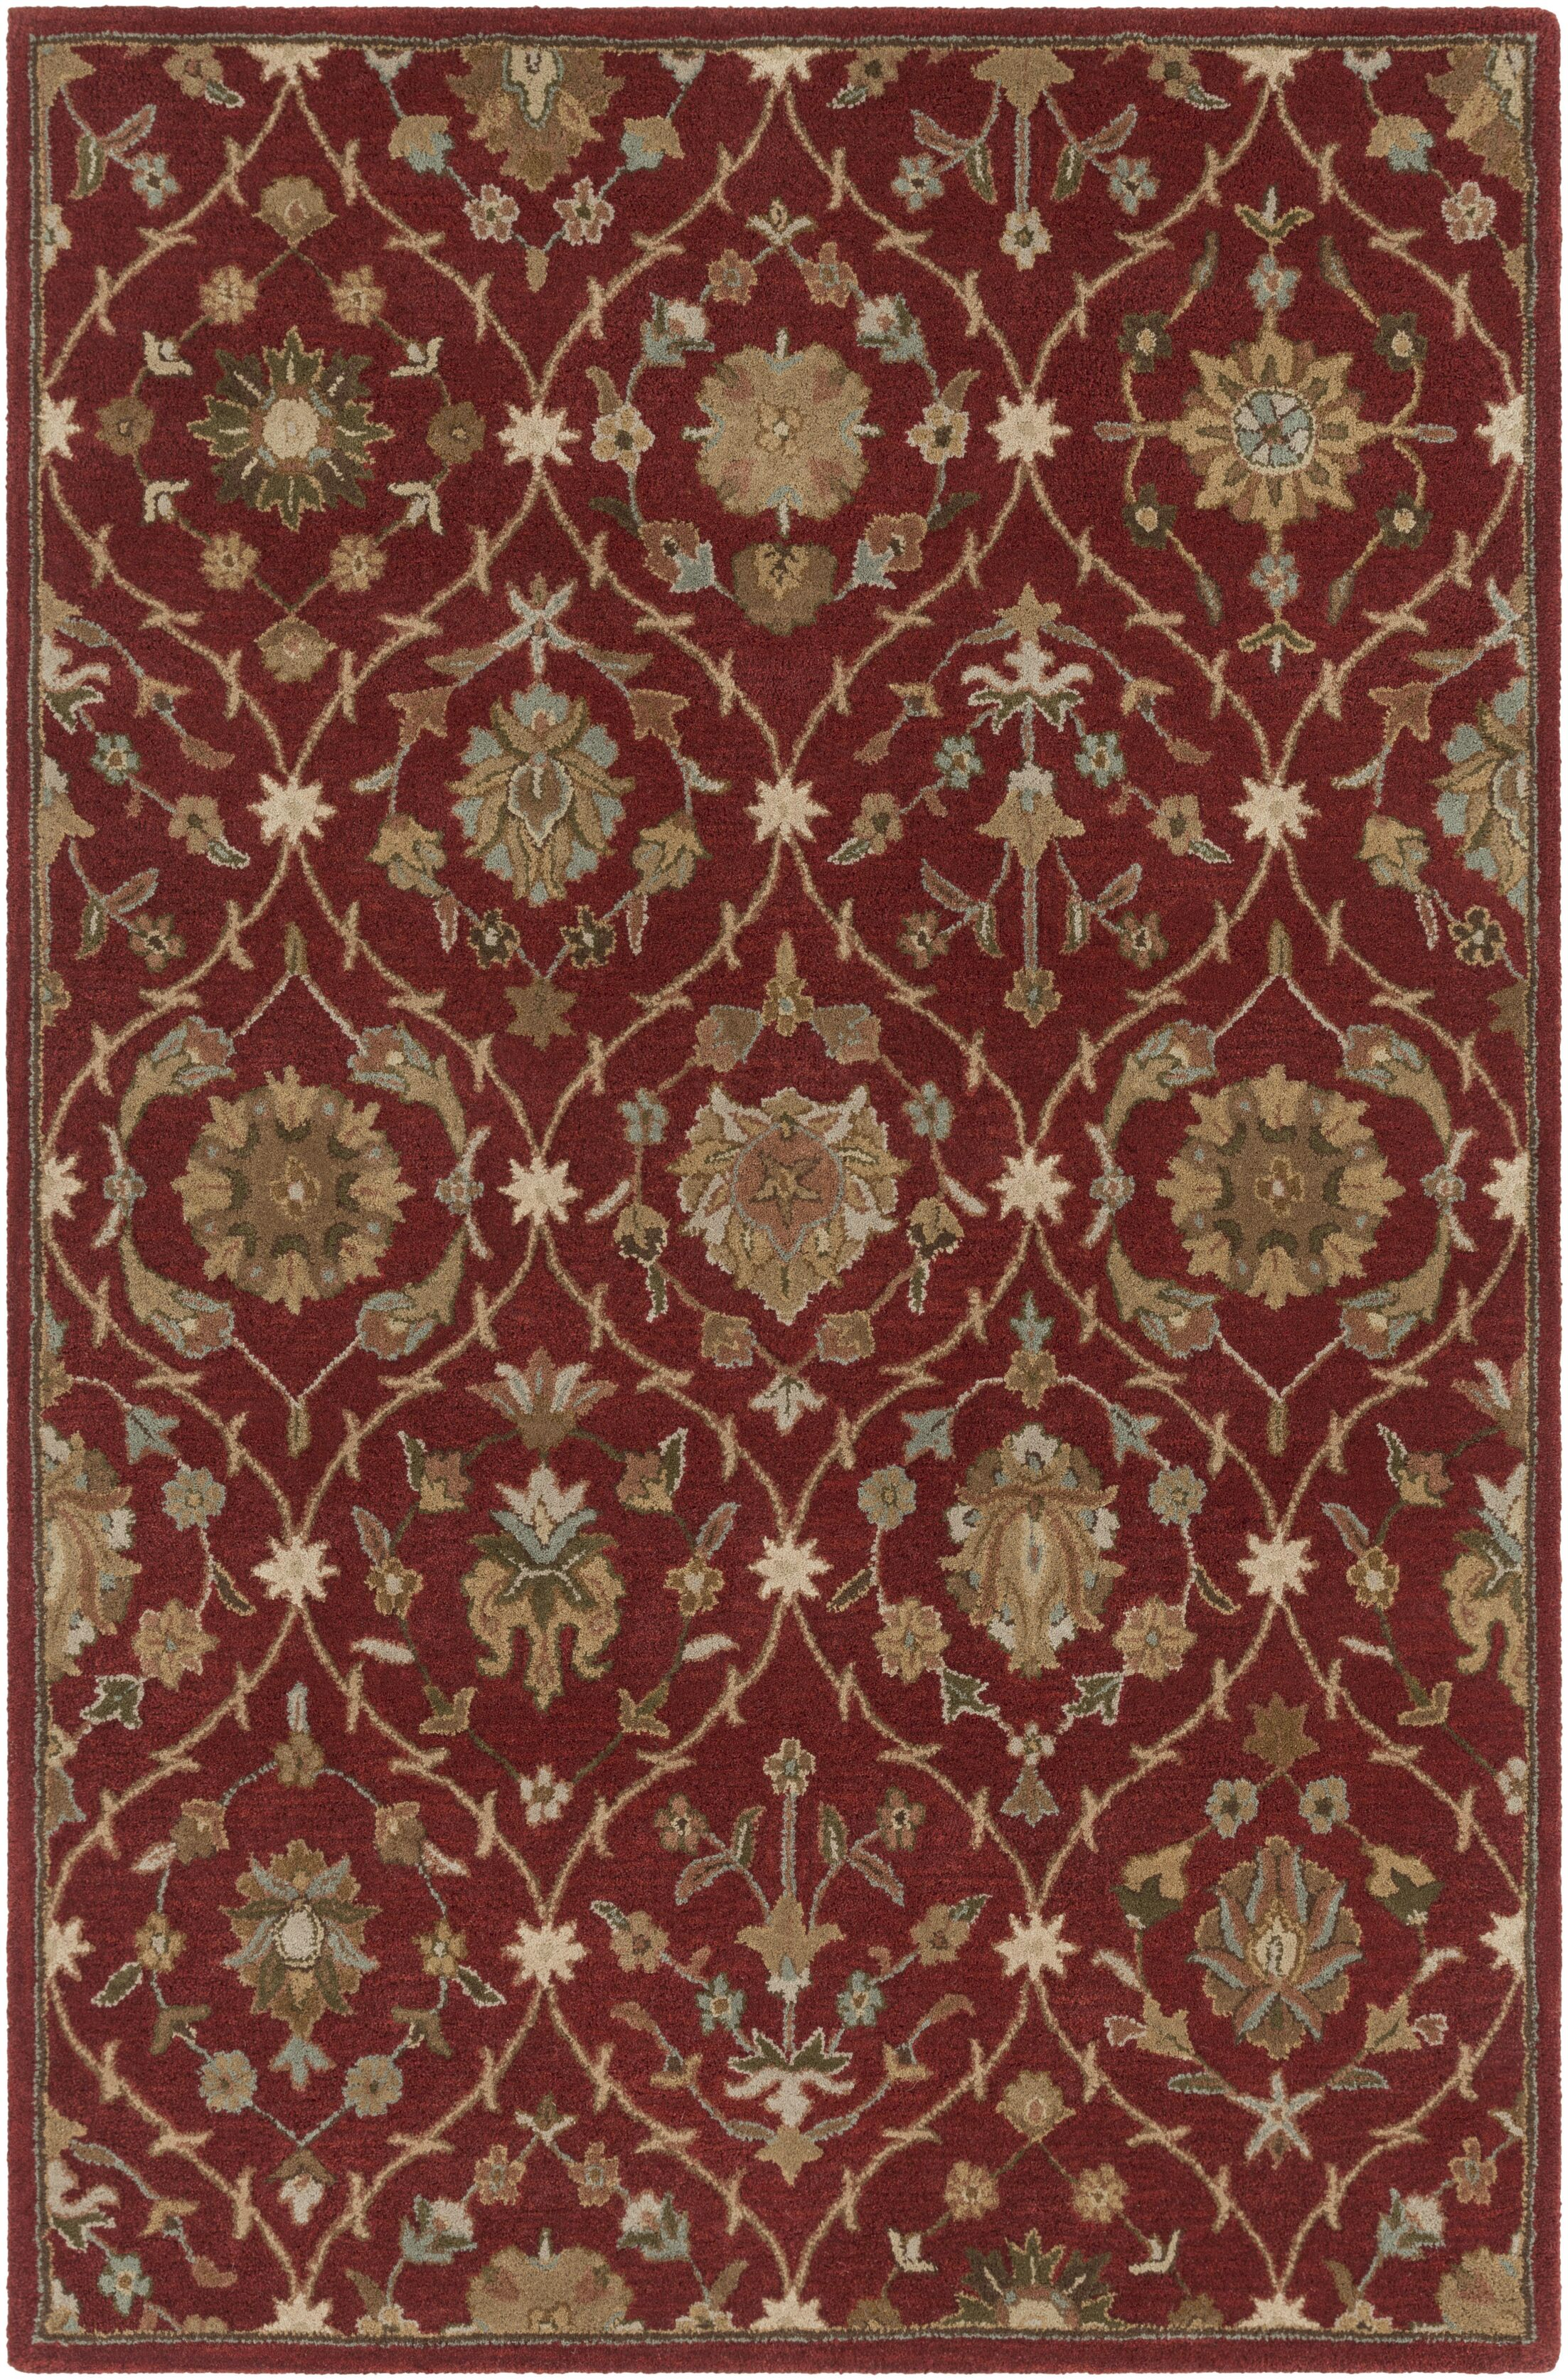 Phinney Hand-Tufted Red Area Rug Rug Size: Rectangle 5' x 7'6